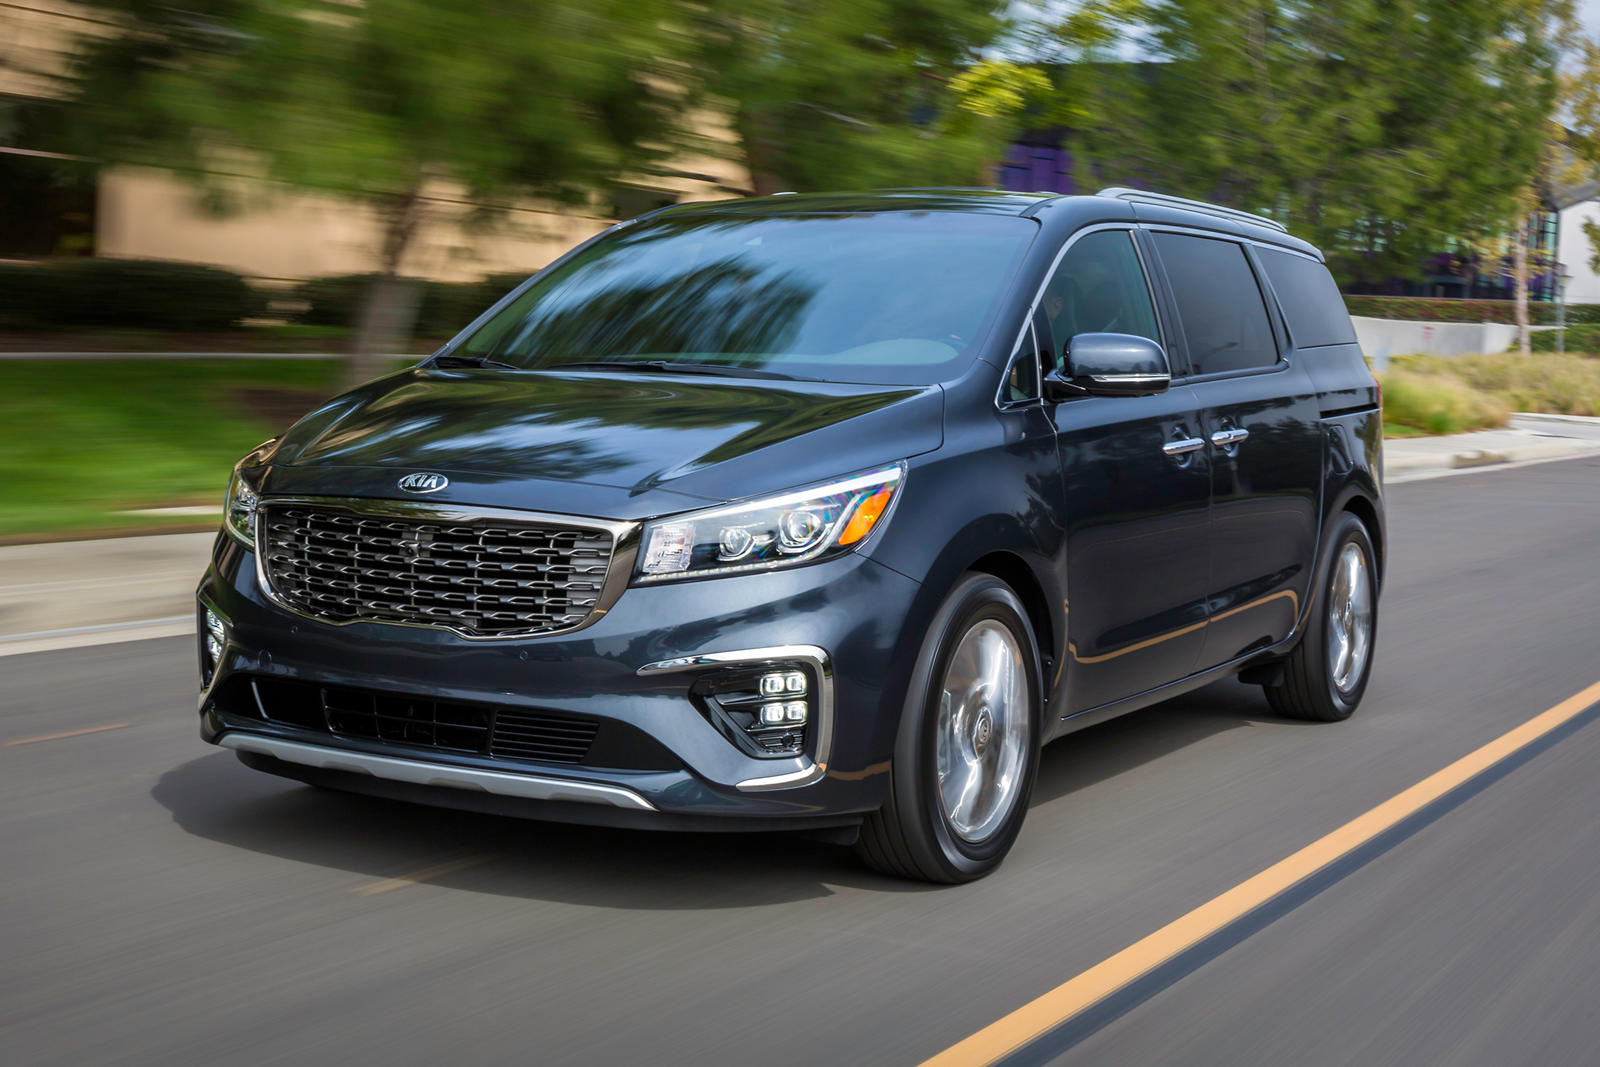 All-New 2021 Kia Sedona Coming Soon With Big Changes | Carbuzz - 2022 Kia Sedona Ex Specs, Changes, Transmission Update